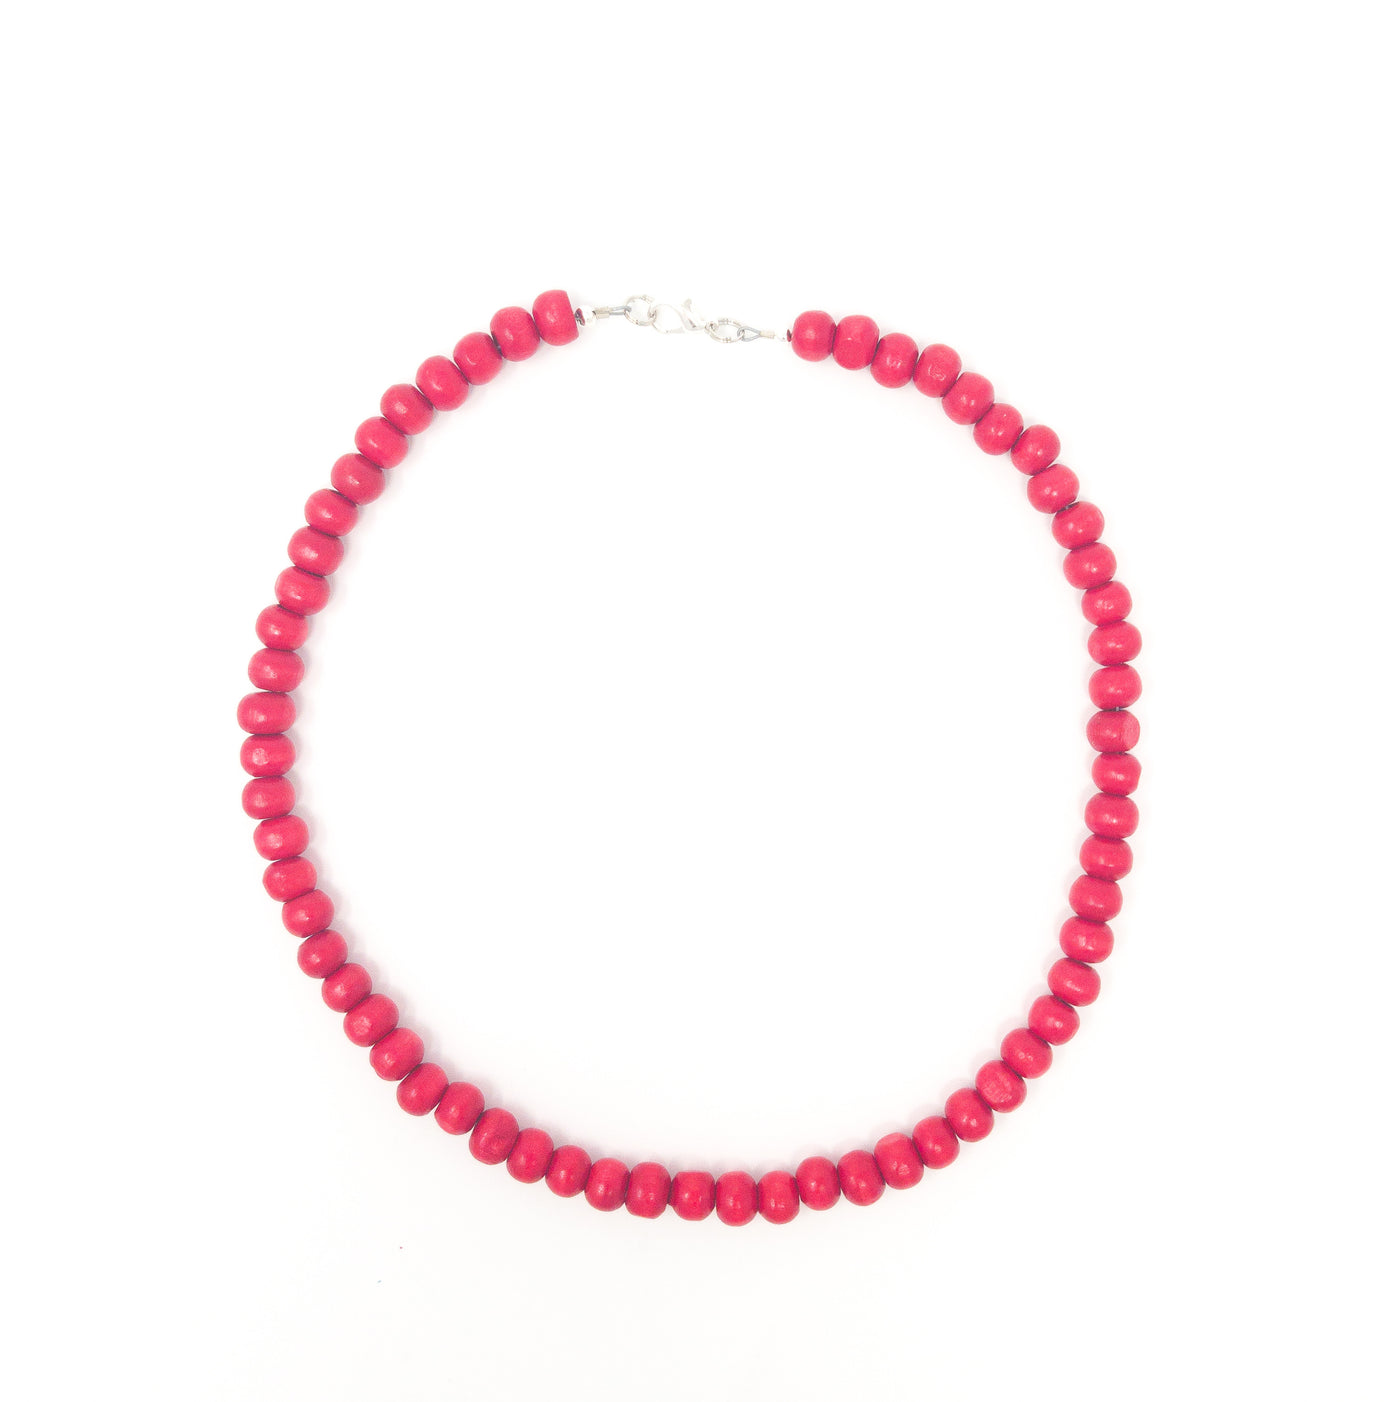 Blue And Pink Beaded Necklace And Bracelet Sets